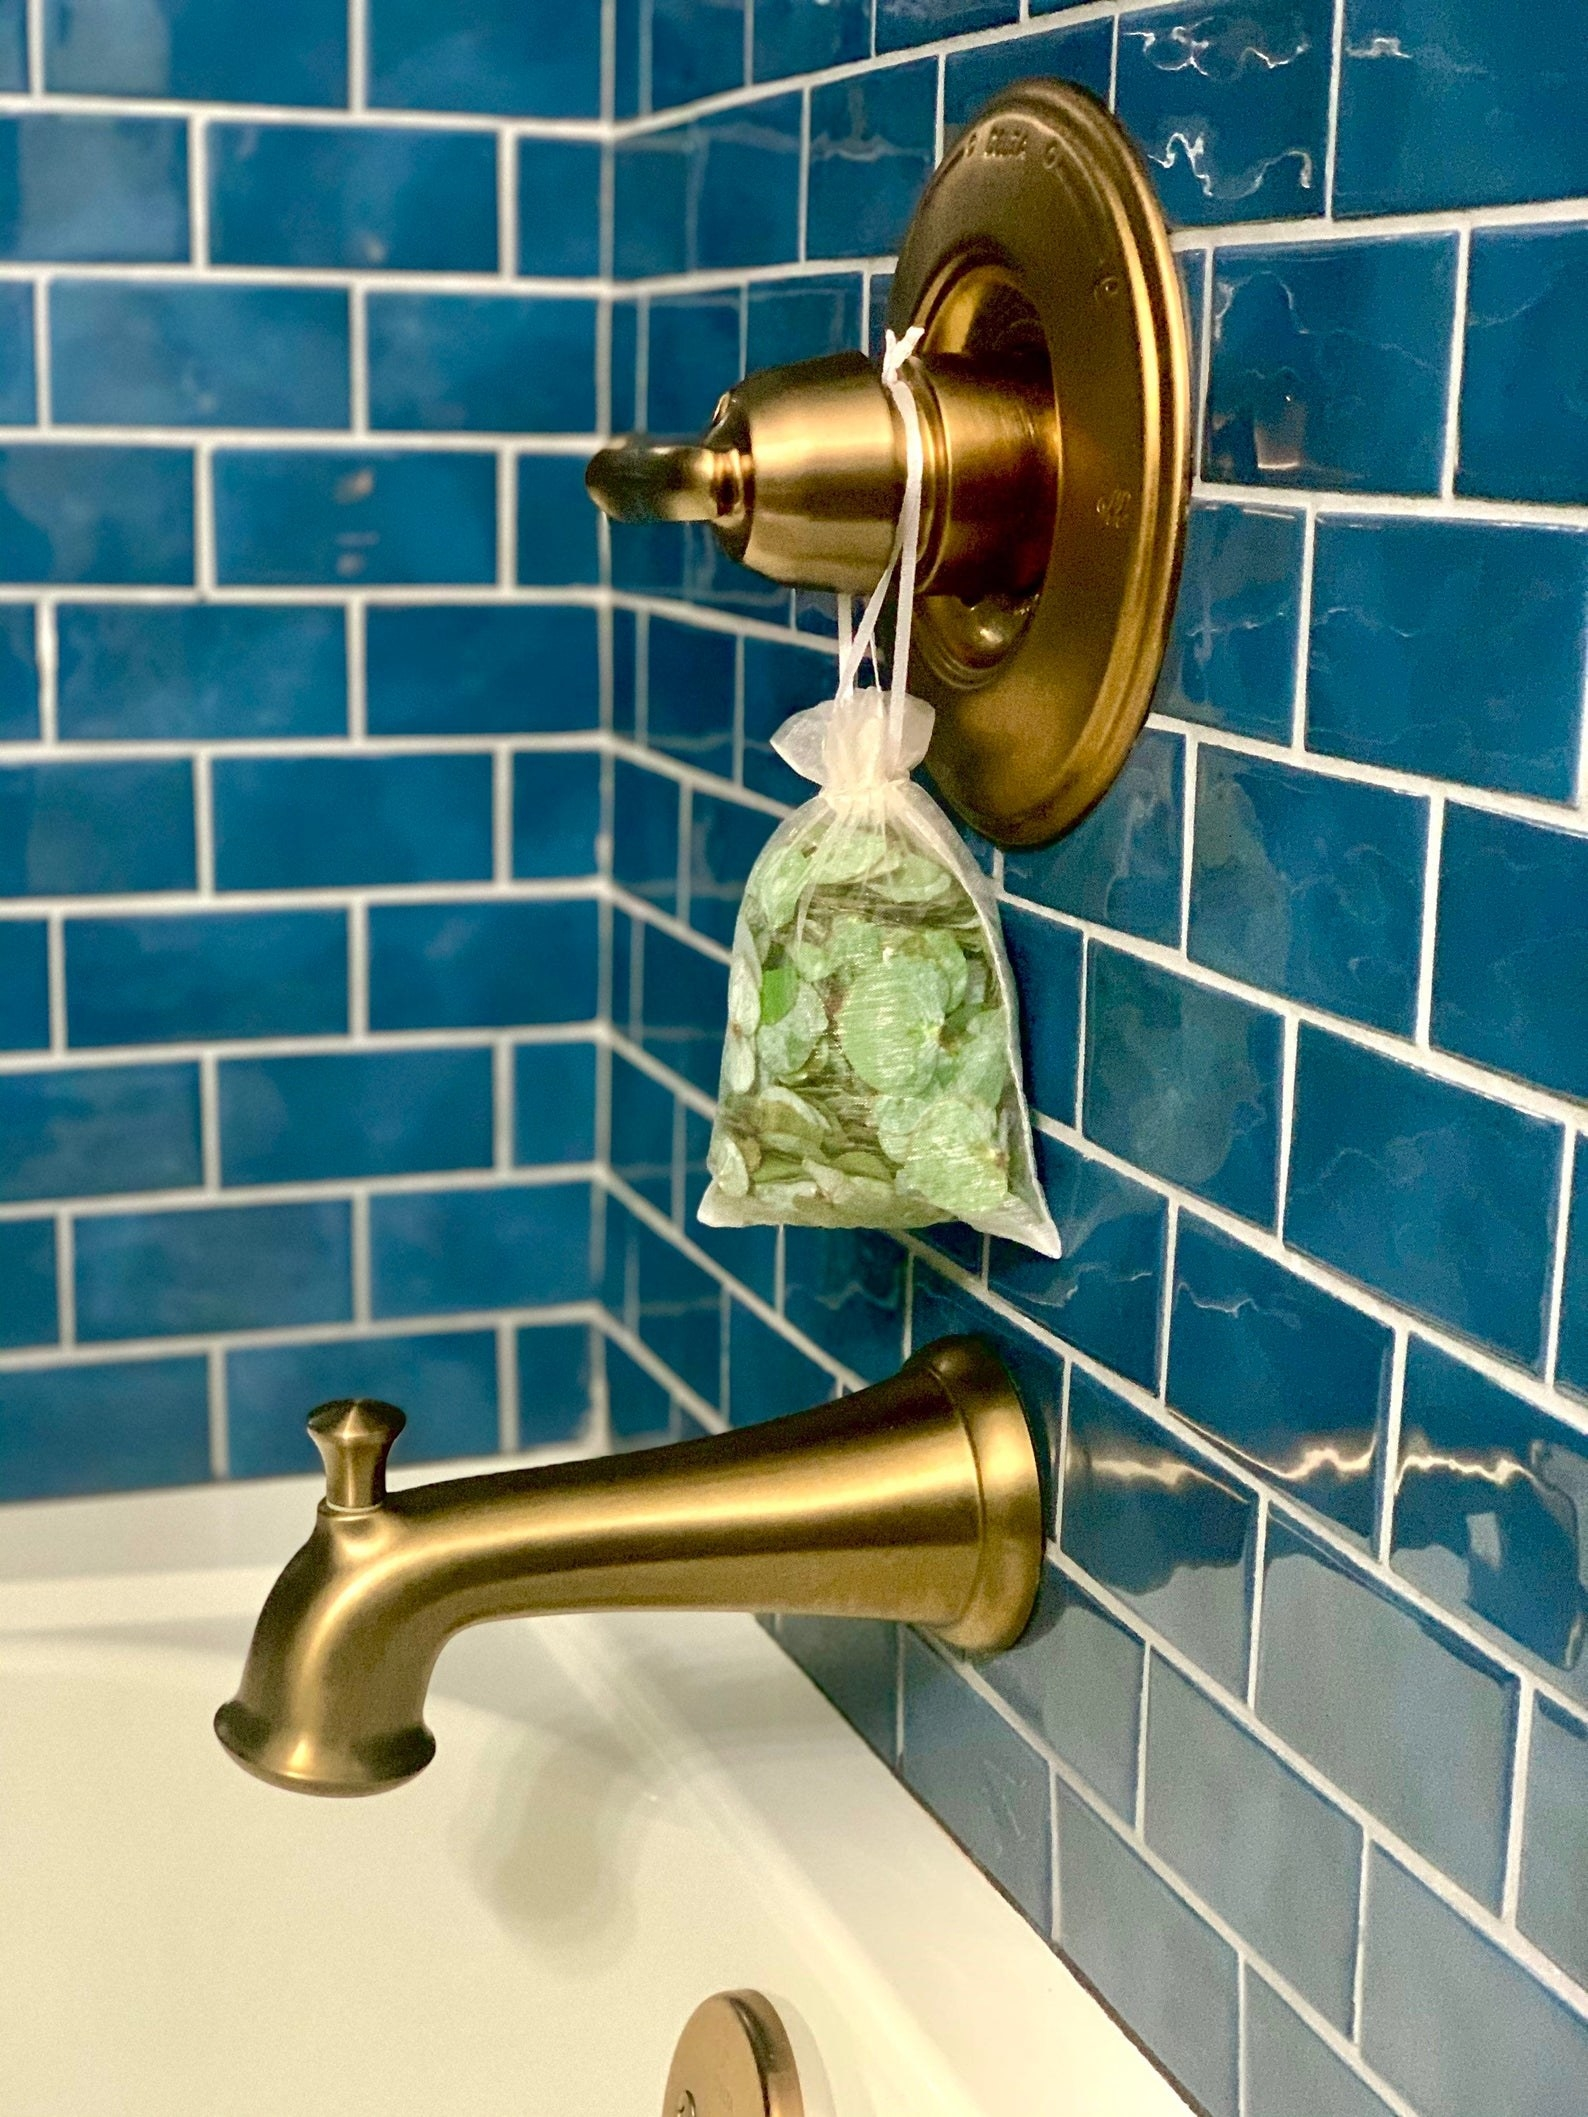 clear pouch of fresh eucalyptus leaves and essential oil hanging on a gold bath faucet